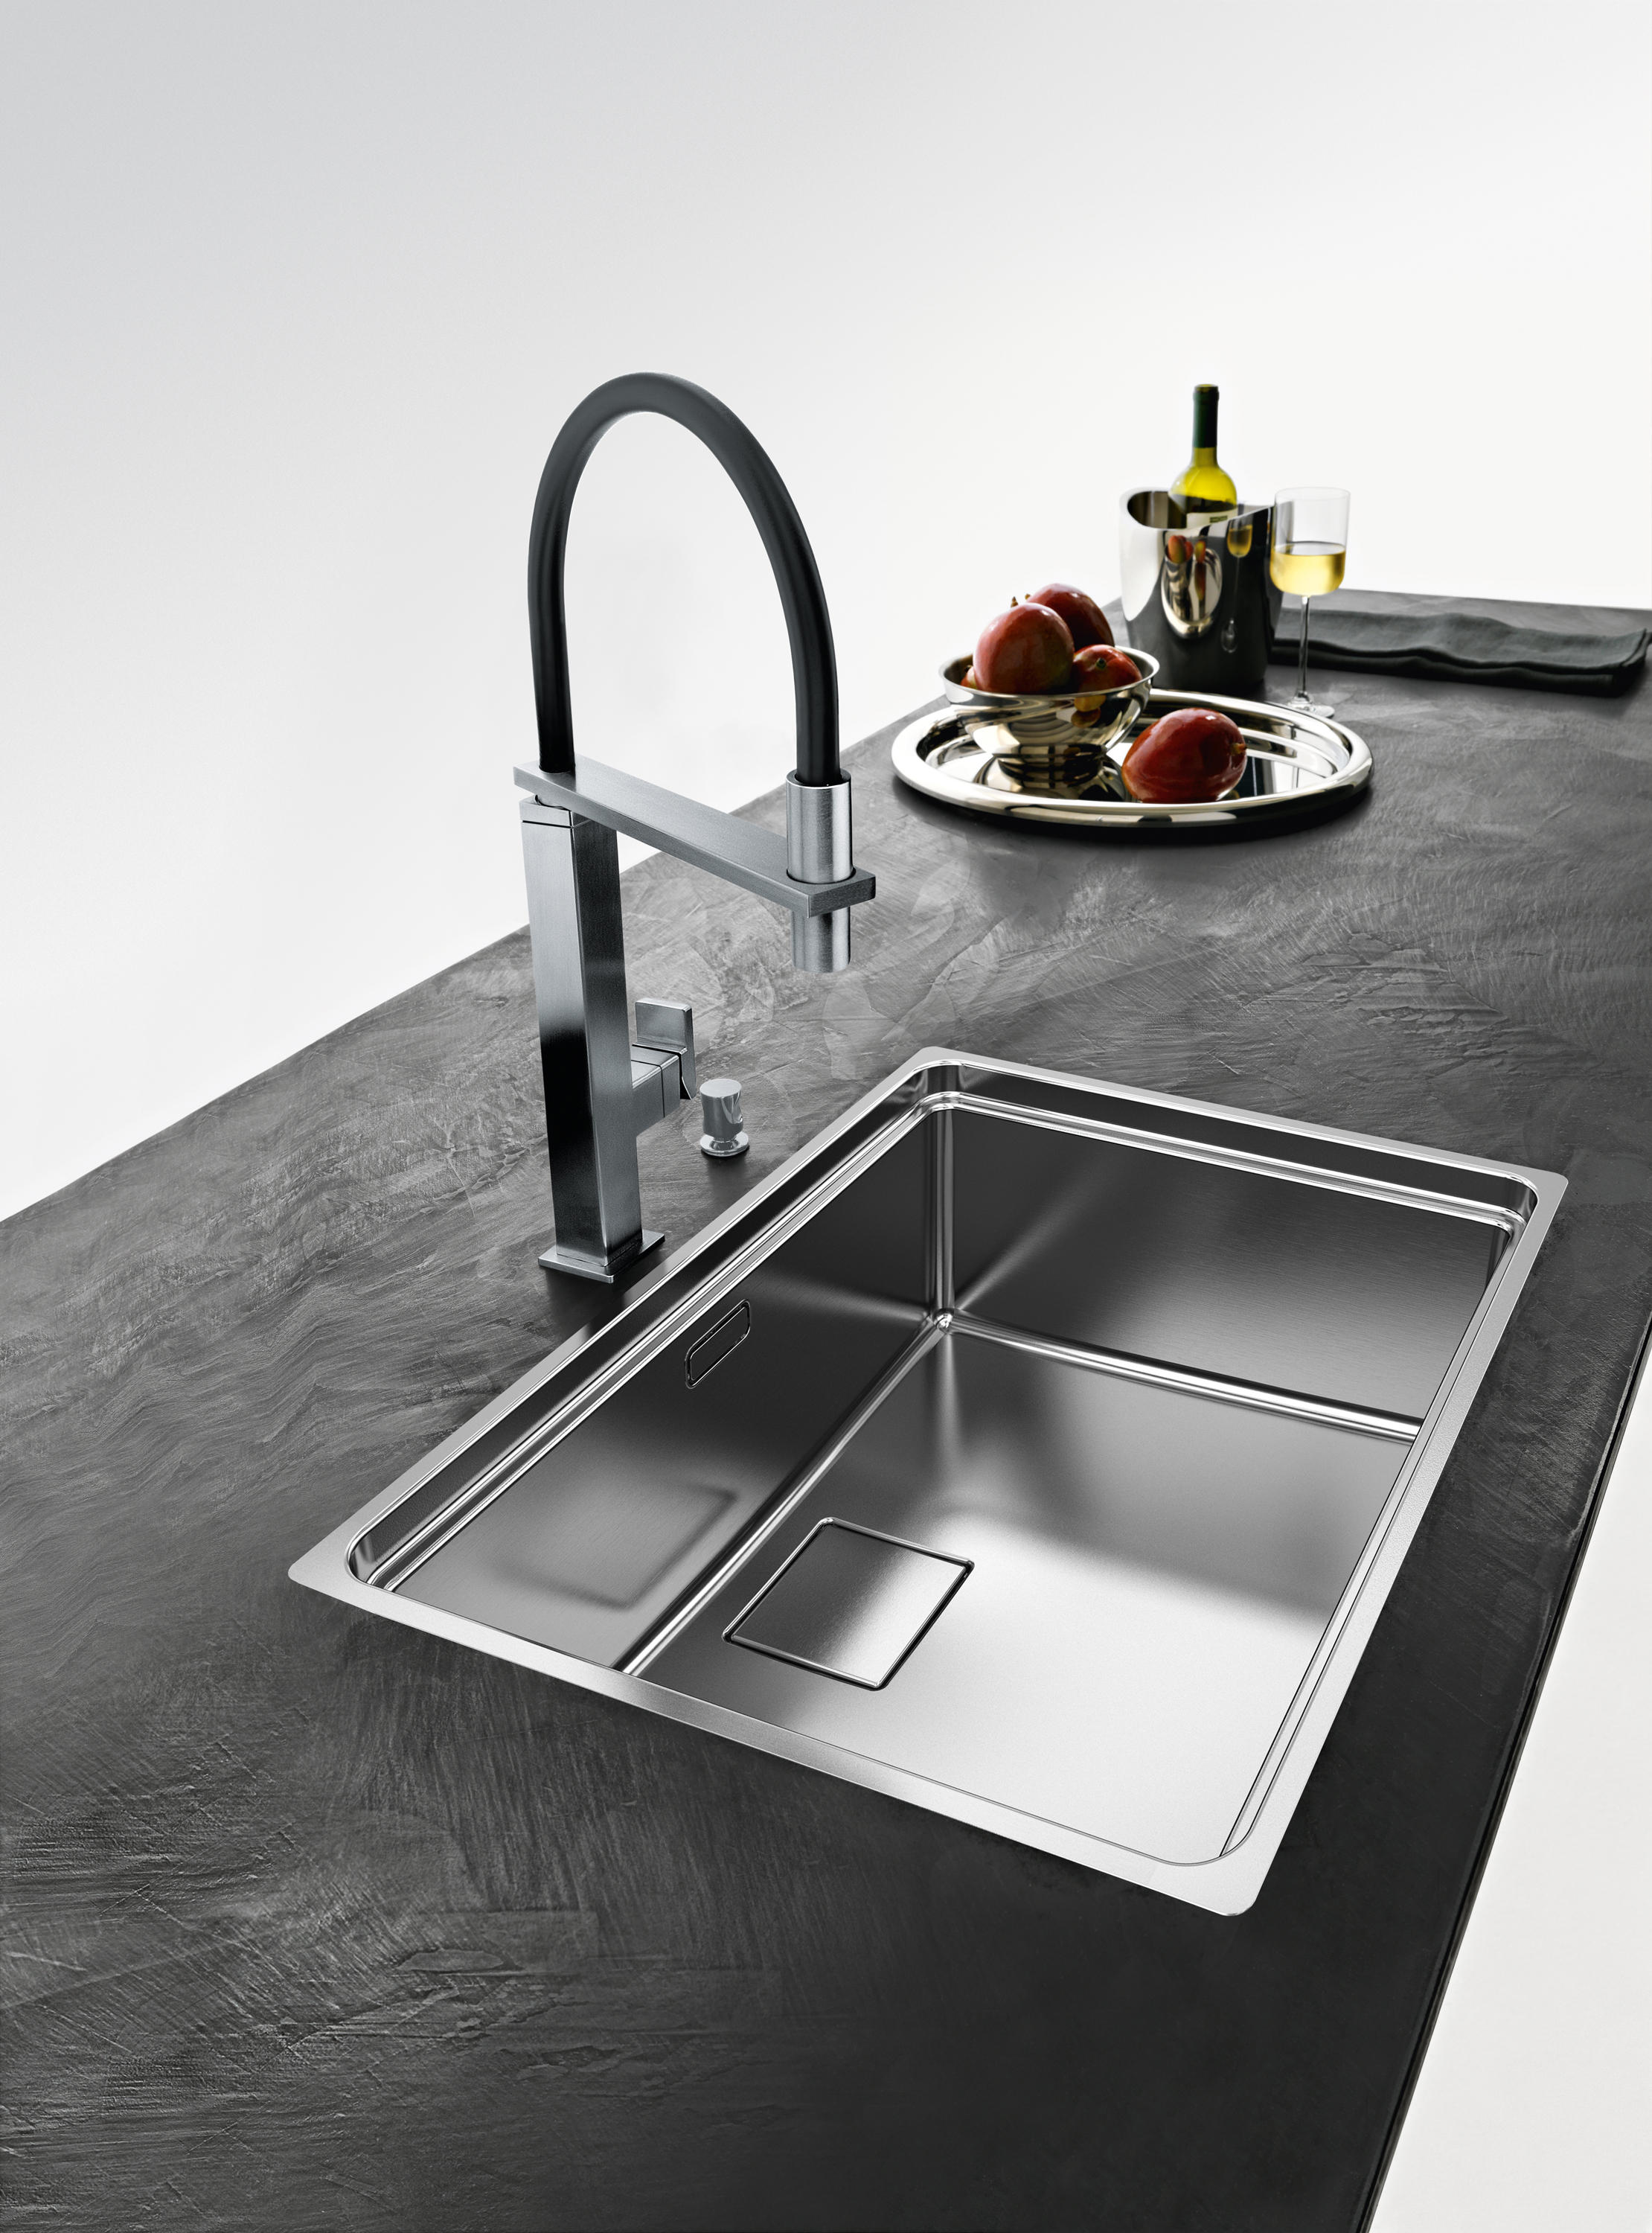 franke kitchen sinks hinges for cabinets centinox sink cmx 210 50 stainless steel